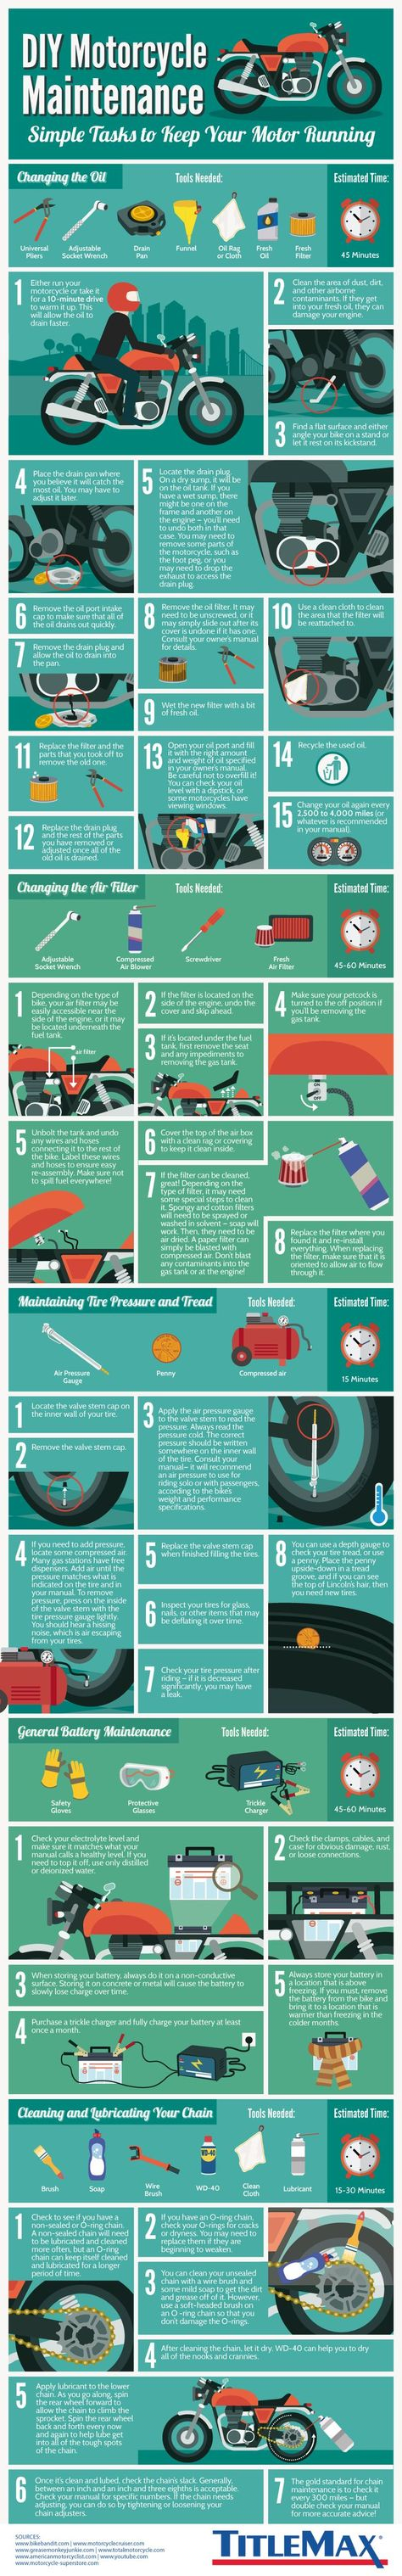 DIY #Motorcycle #Maintenance Punch List - Infographic